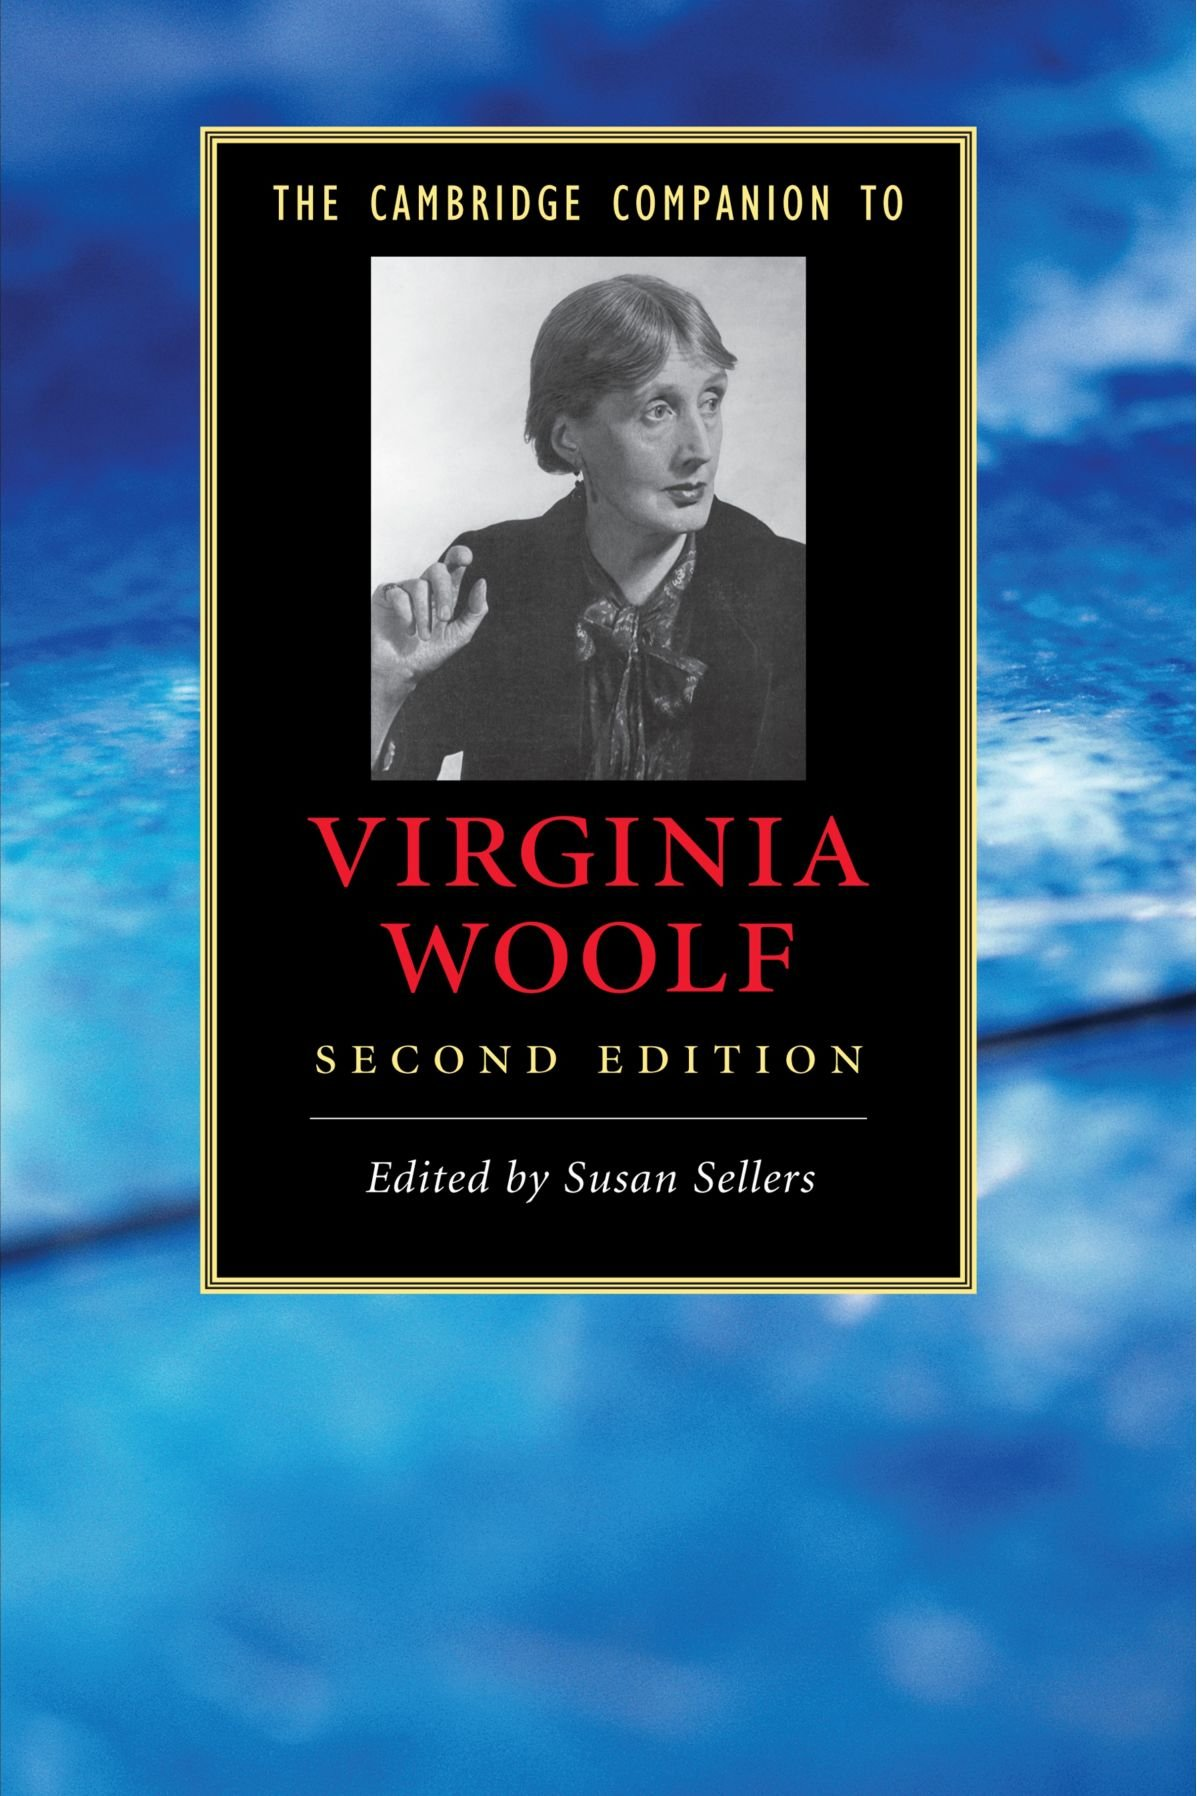 feminist destinations and further essays on virginia woolf amazon the cambridge companion to virginia woolf cambridge companions to literature